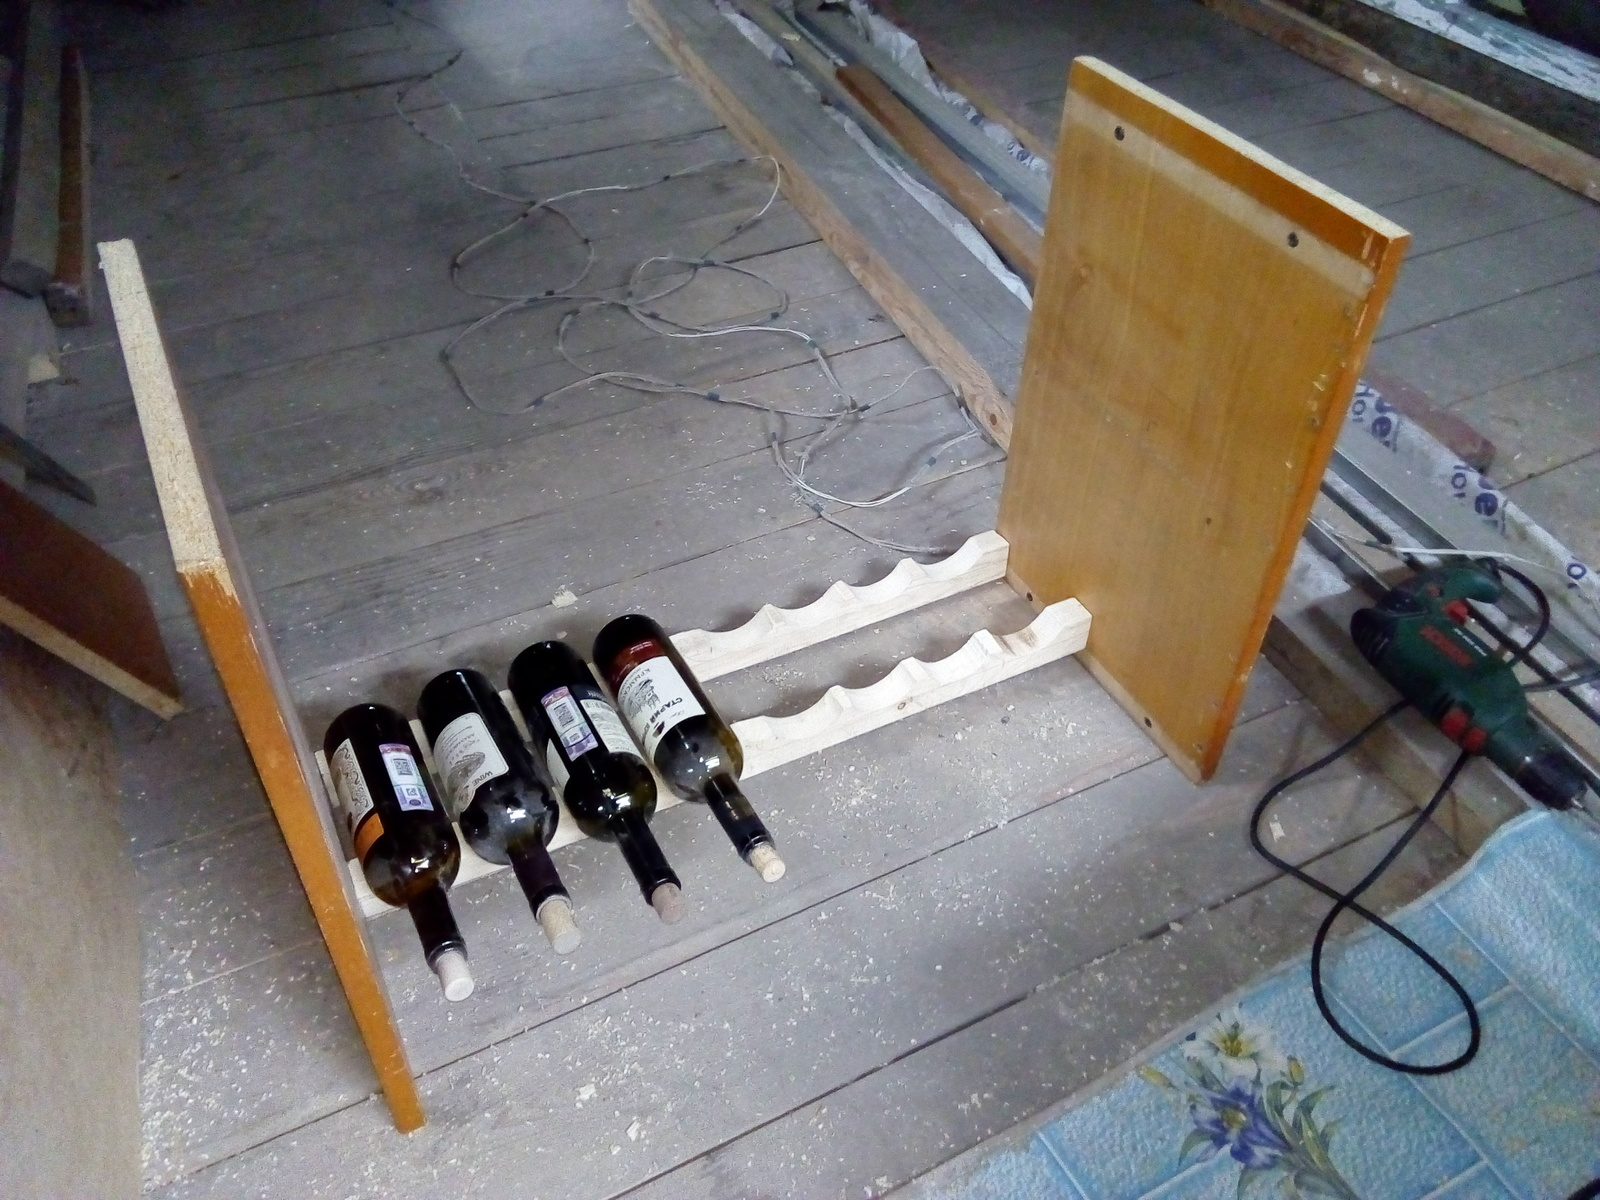 A bookcase for wine bottles, planks, bottles, you can see, approximately, made, full, larger, front, shelves, cupboard, wall, Bars, it will be aesthetics, rail, shelf, marked, only made